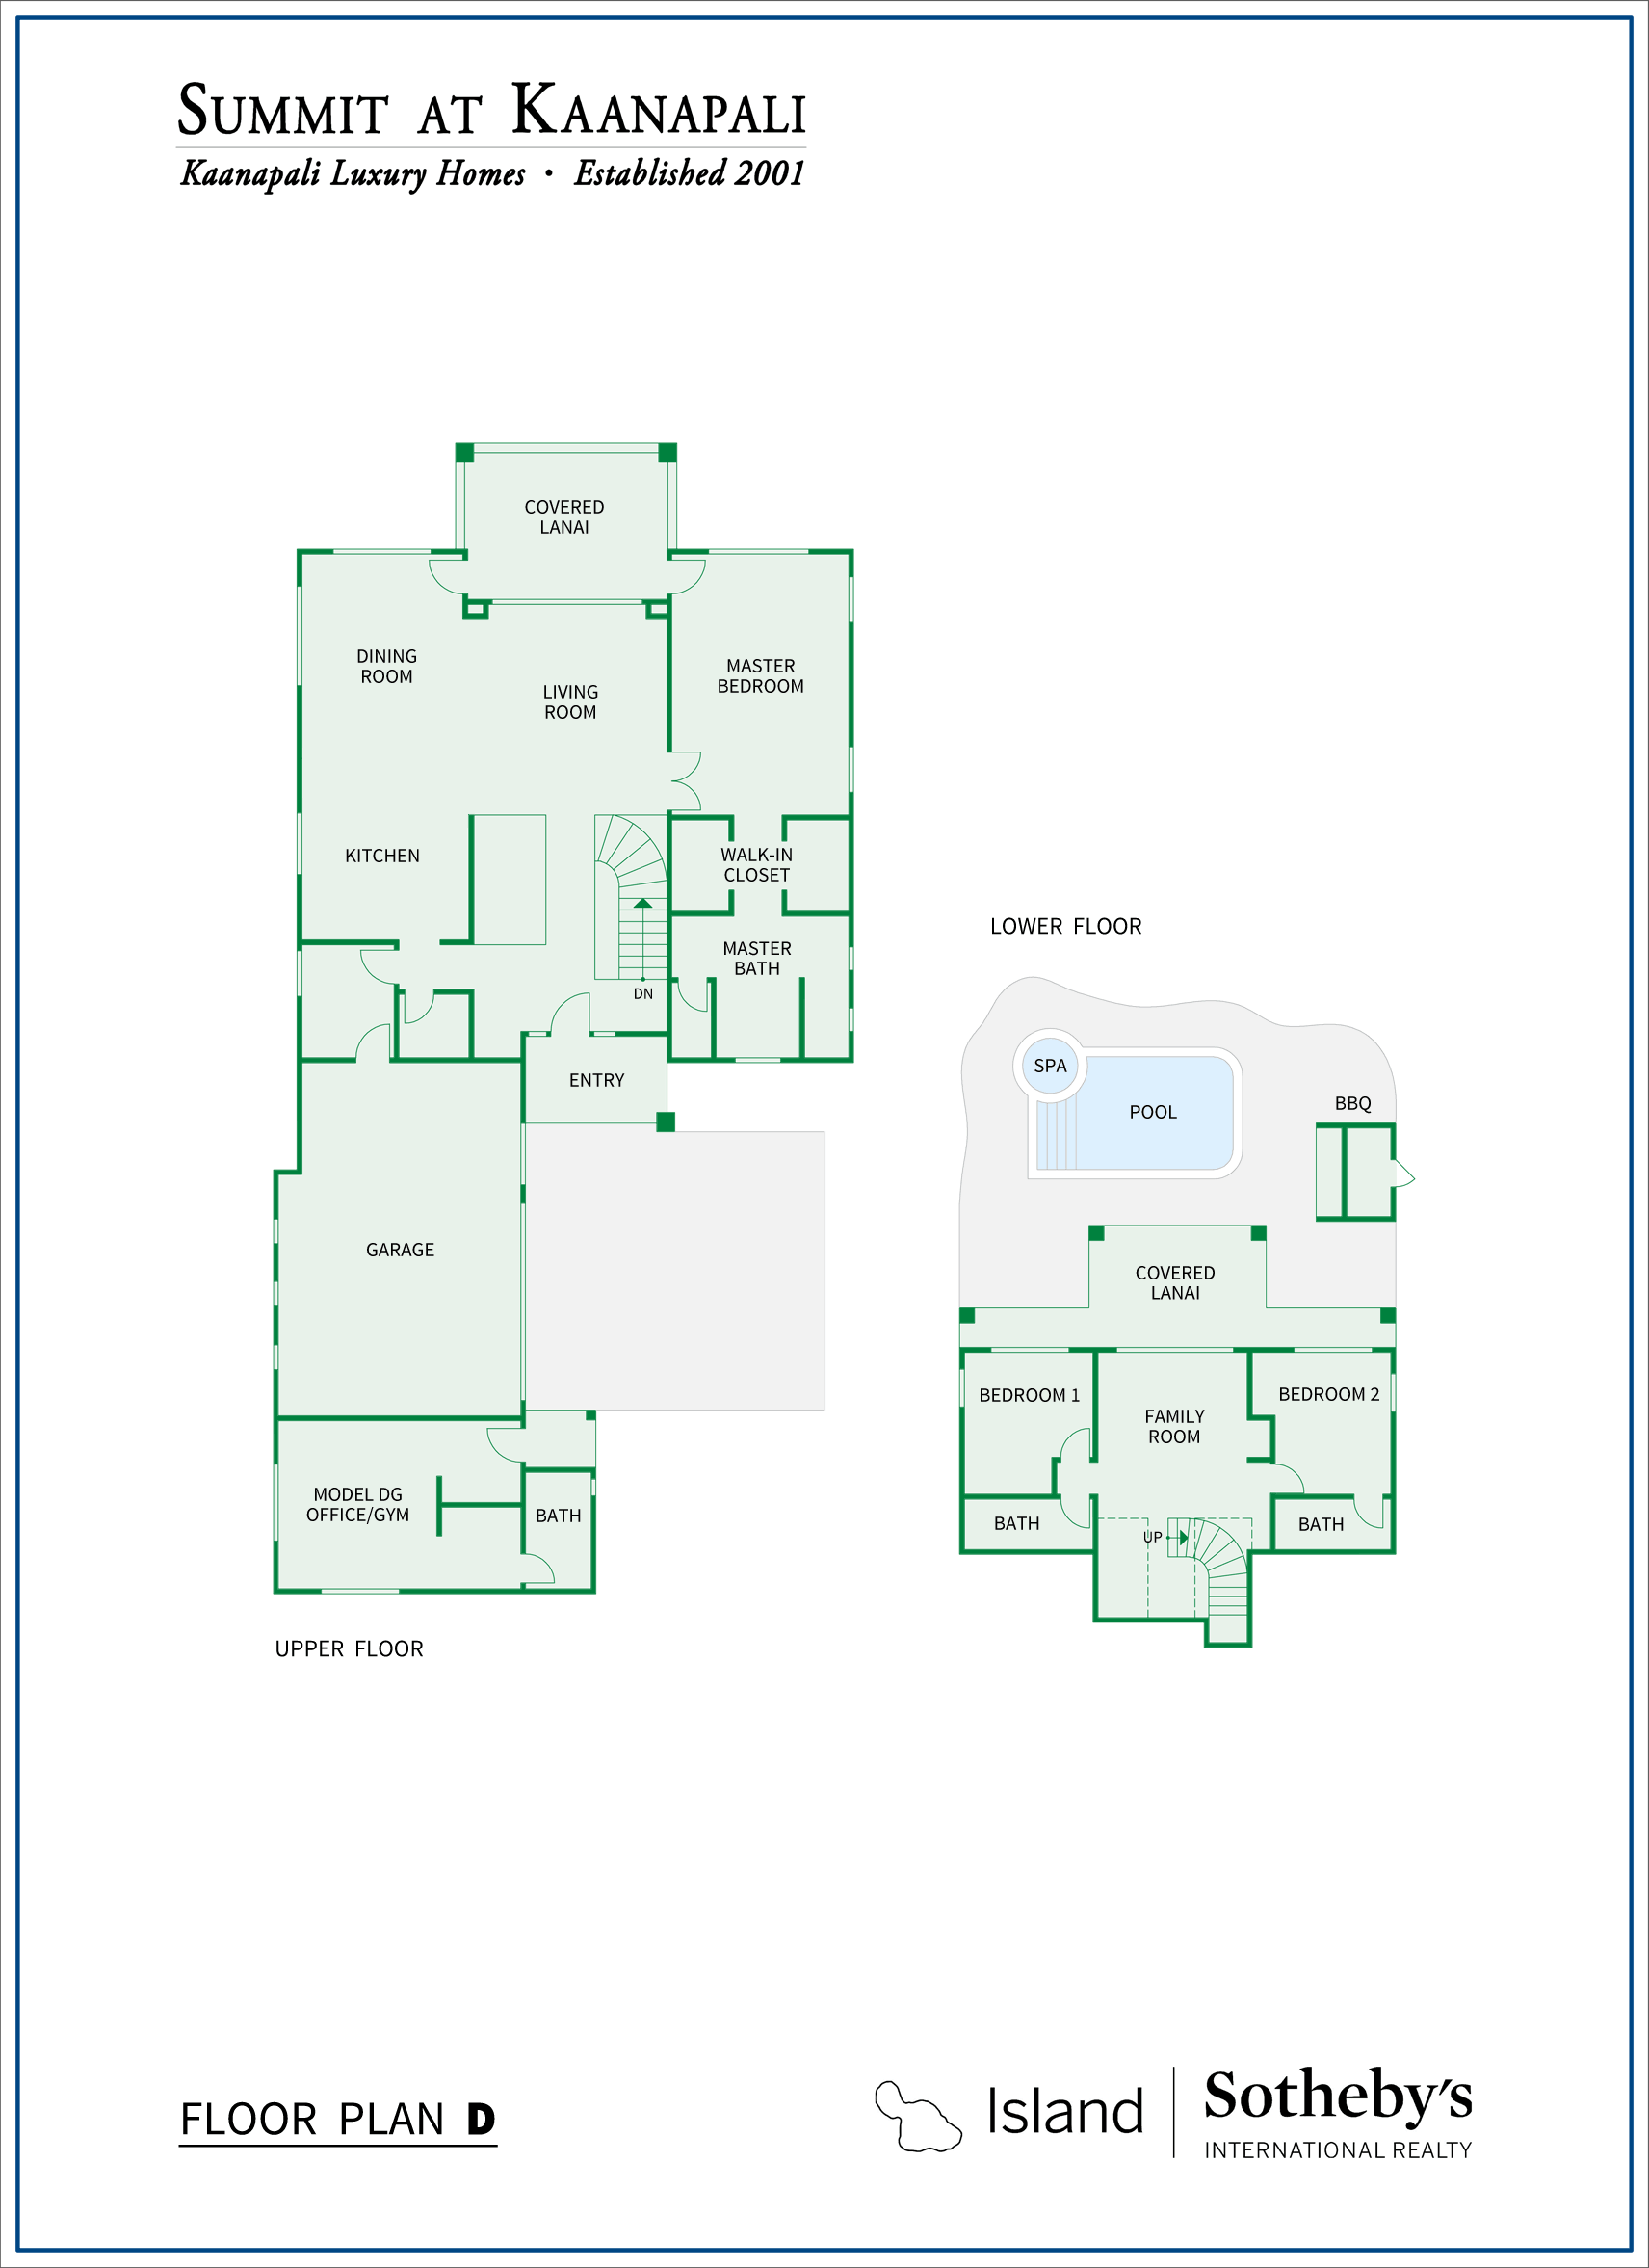 floorplans for summit at kaanapali property